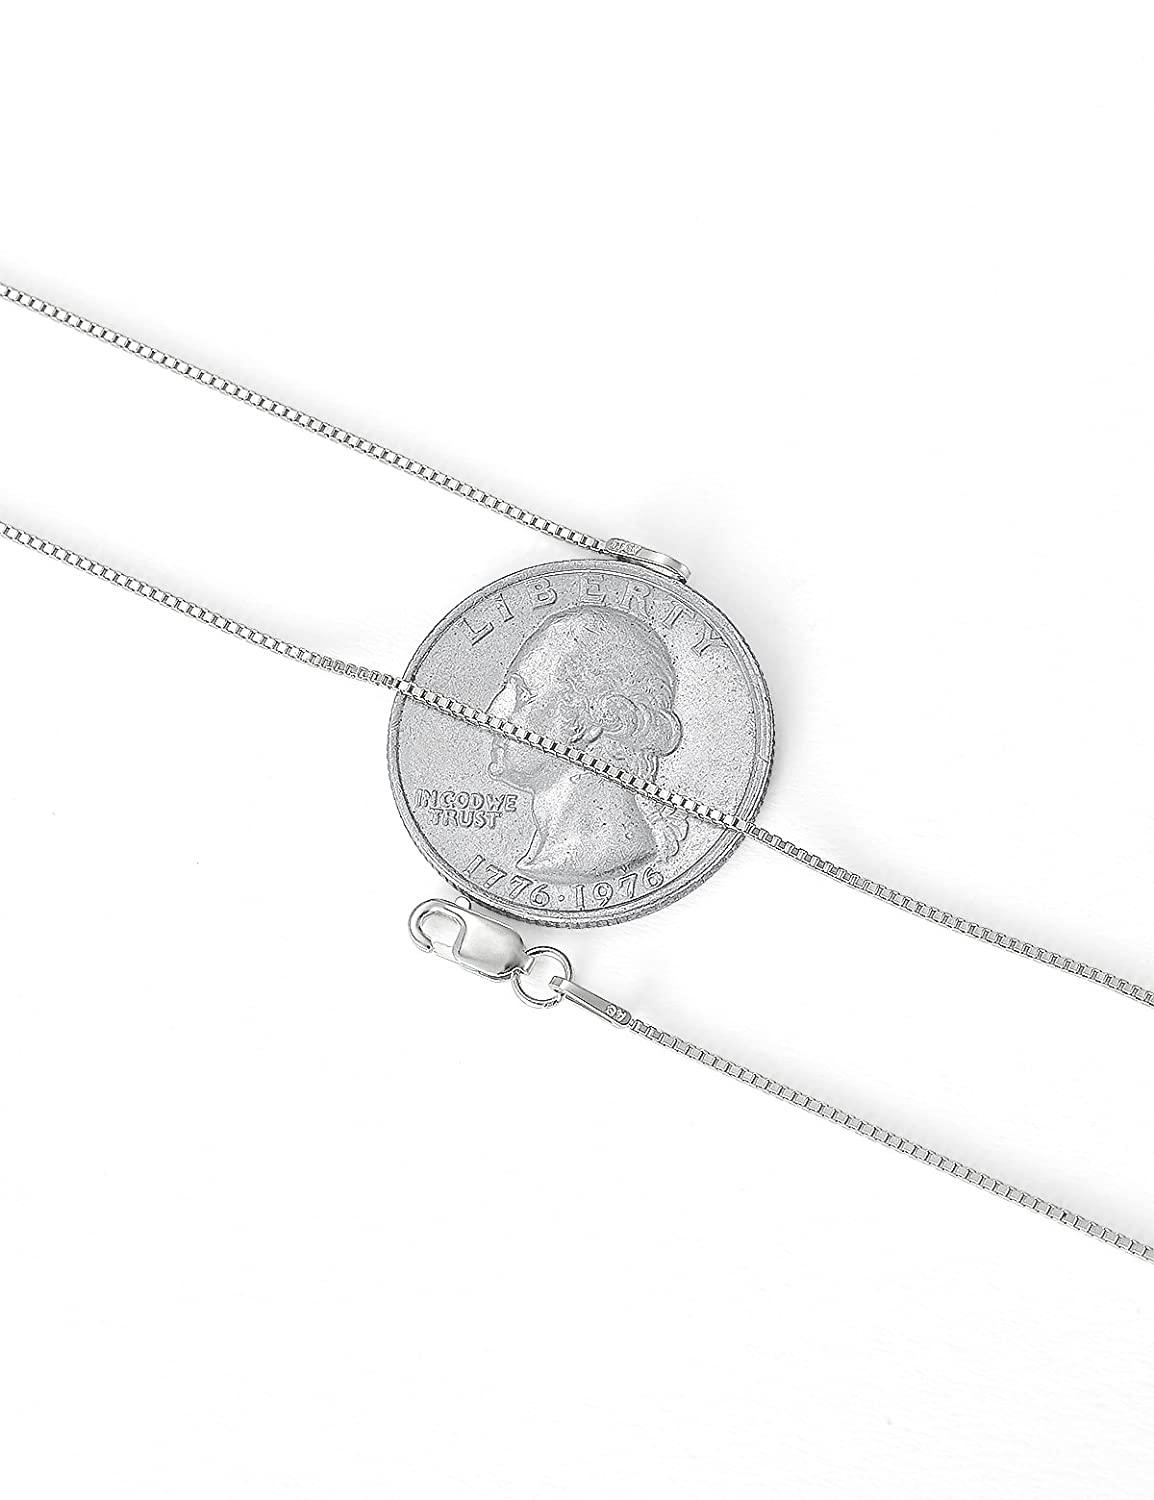 LAVU 925 Sterling Silver Box Chain Necklace for Women